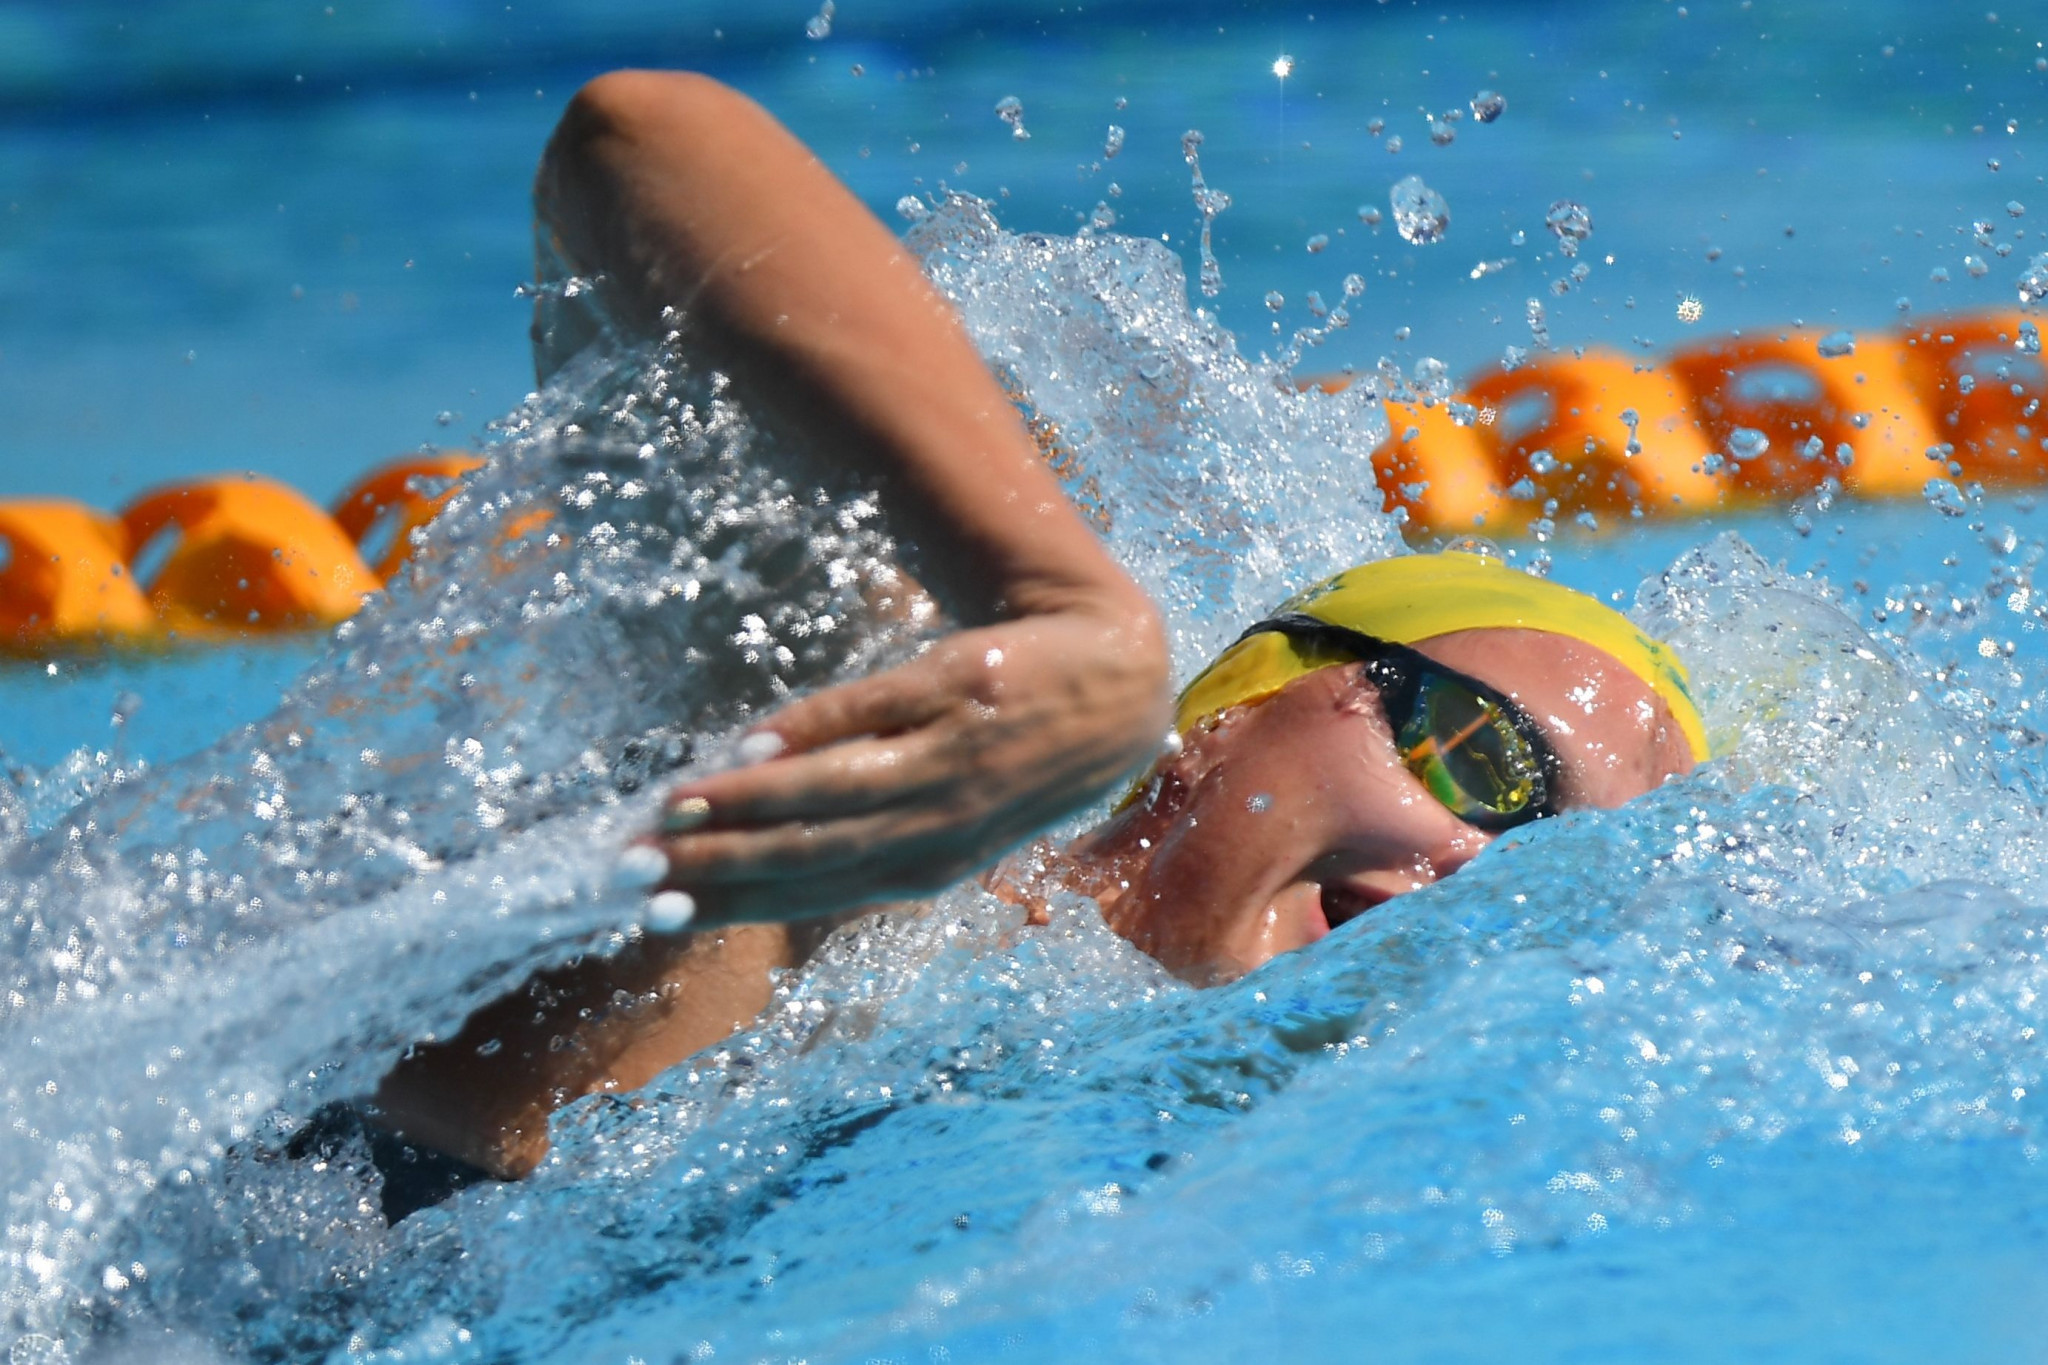 Jack suspended by International Swimming League